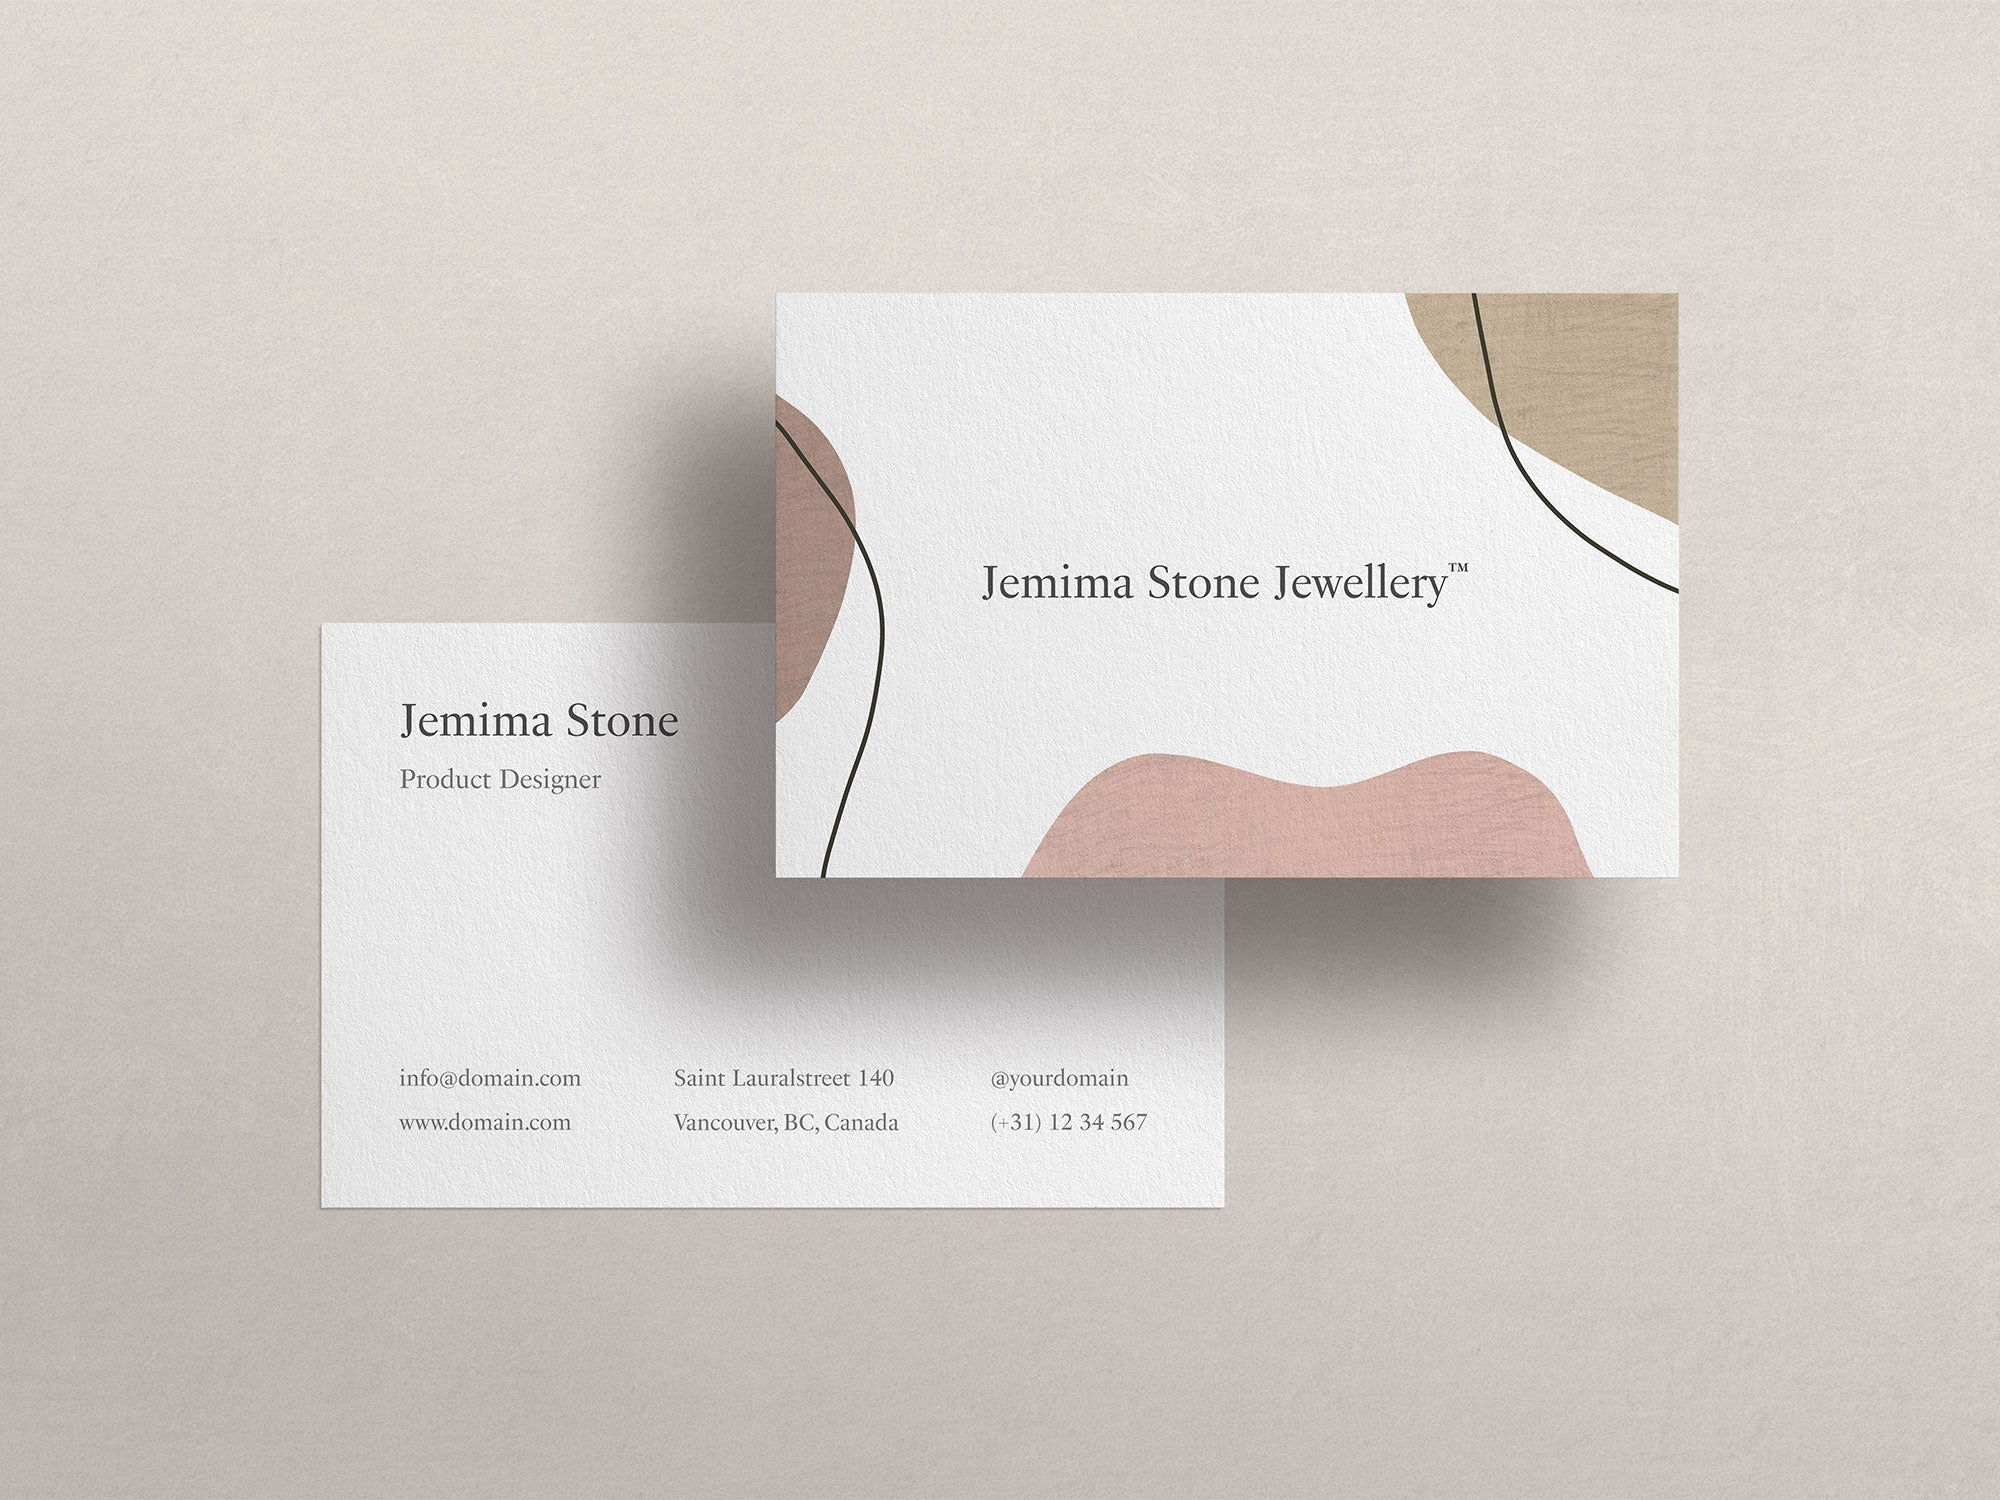 An example of a business card that has all the key information on it (product used as showcase: Business Card Mockup Kit).